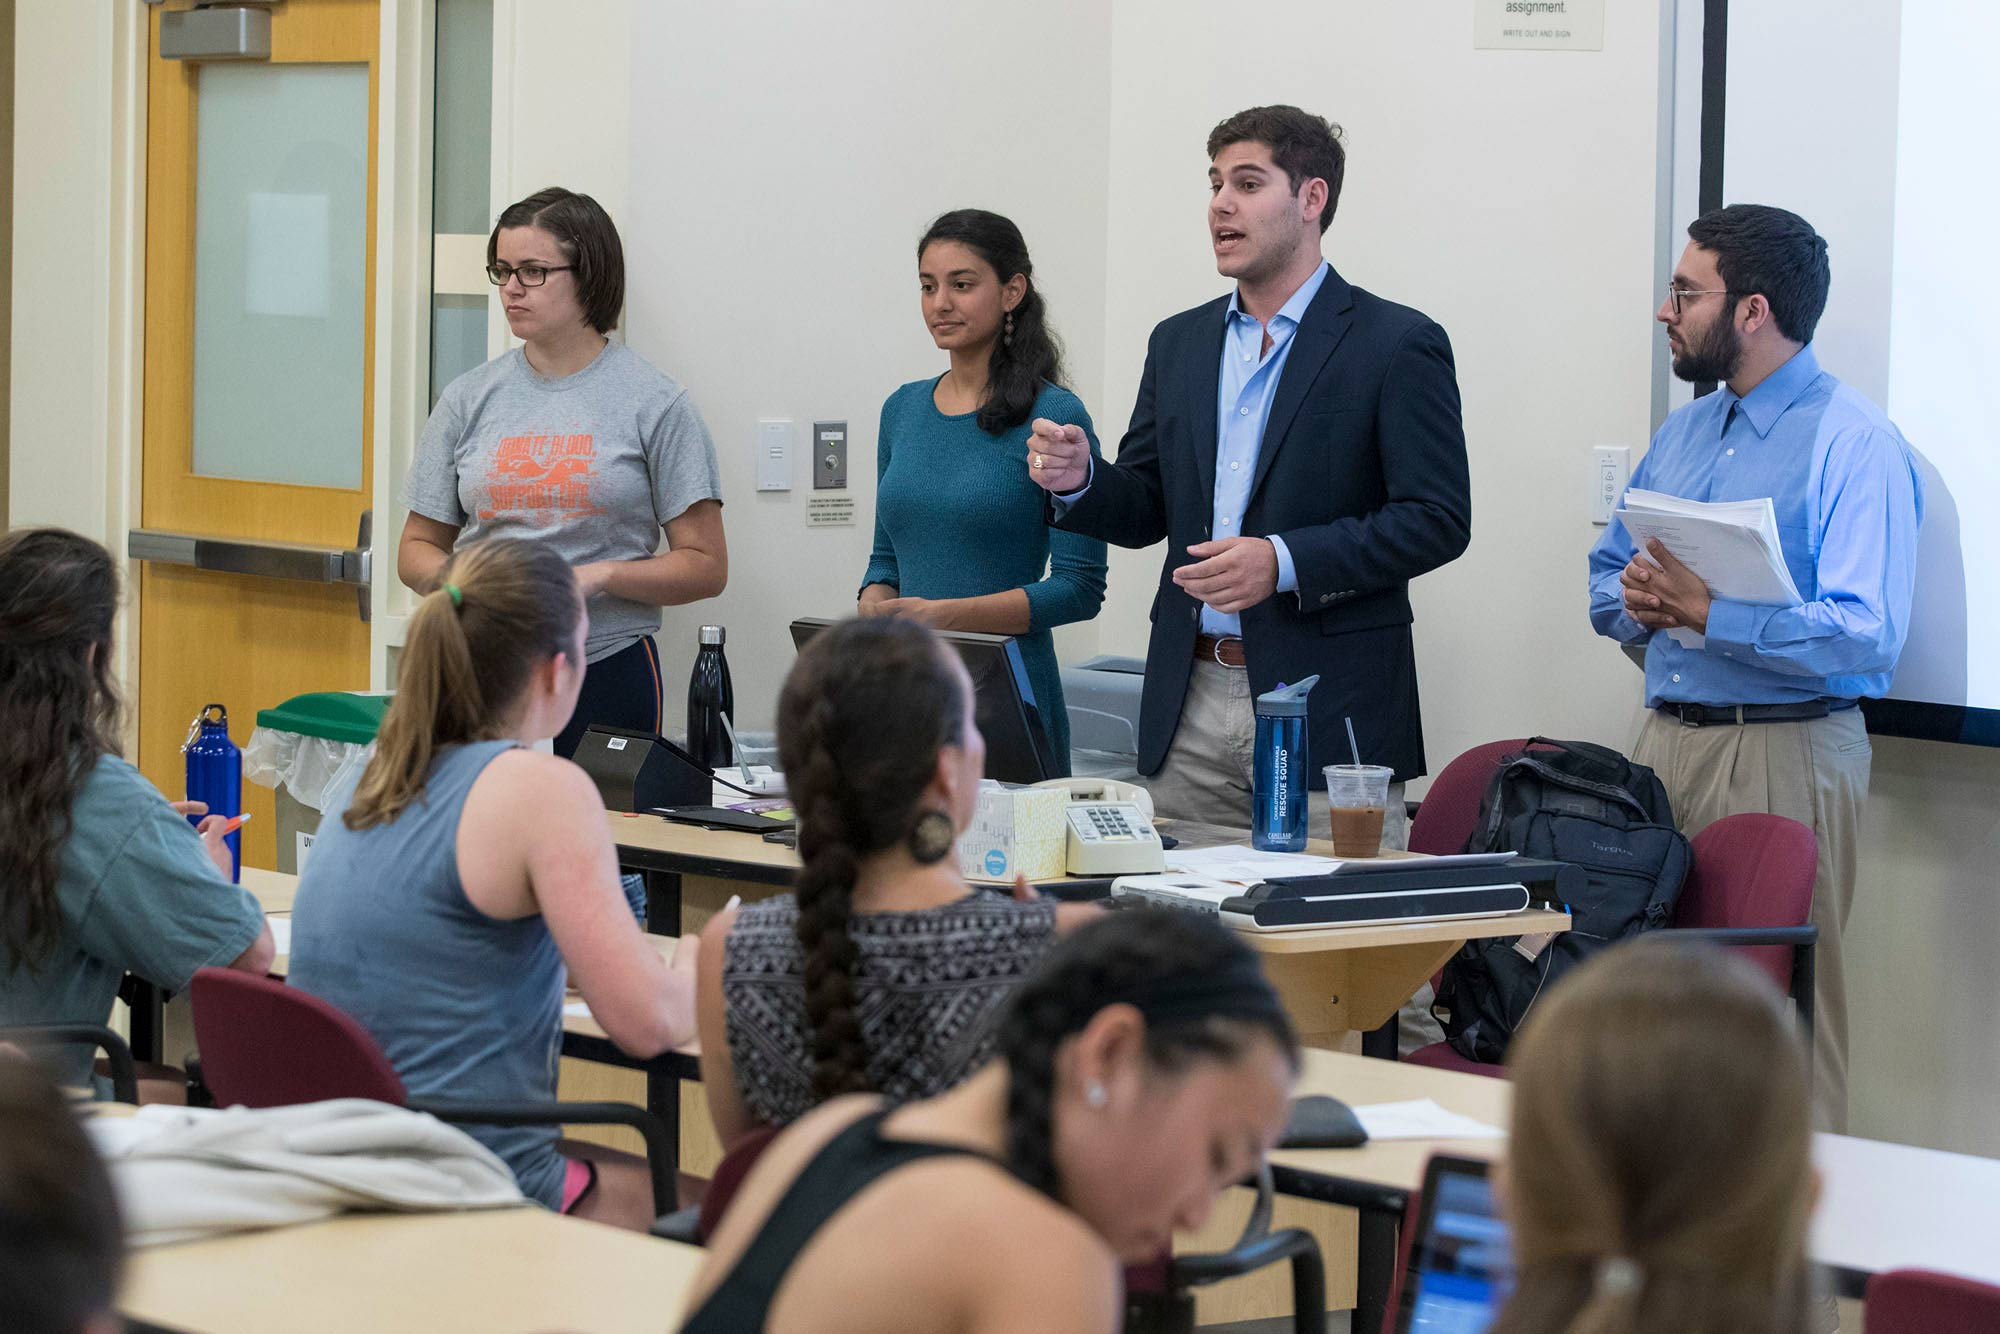 Sabhi Singh and Marc Blatt, second and third from the left, tailored their EMS medical Spanish course to nursing students and offered it during two packed sessions in April. (Photo by Dan Addison, University Communications)